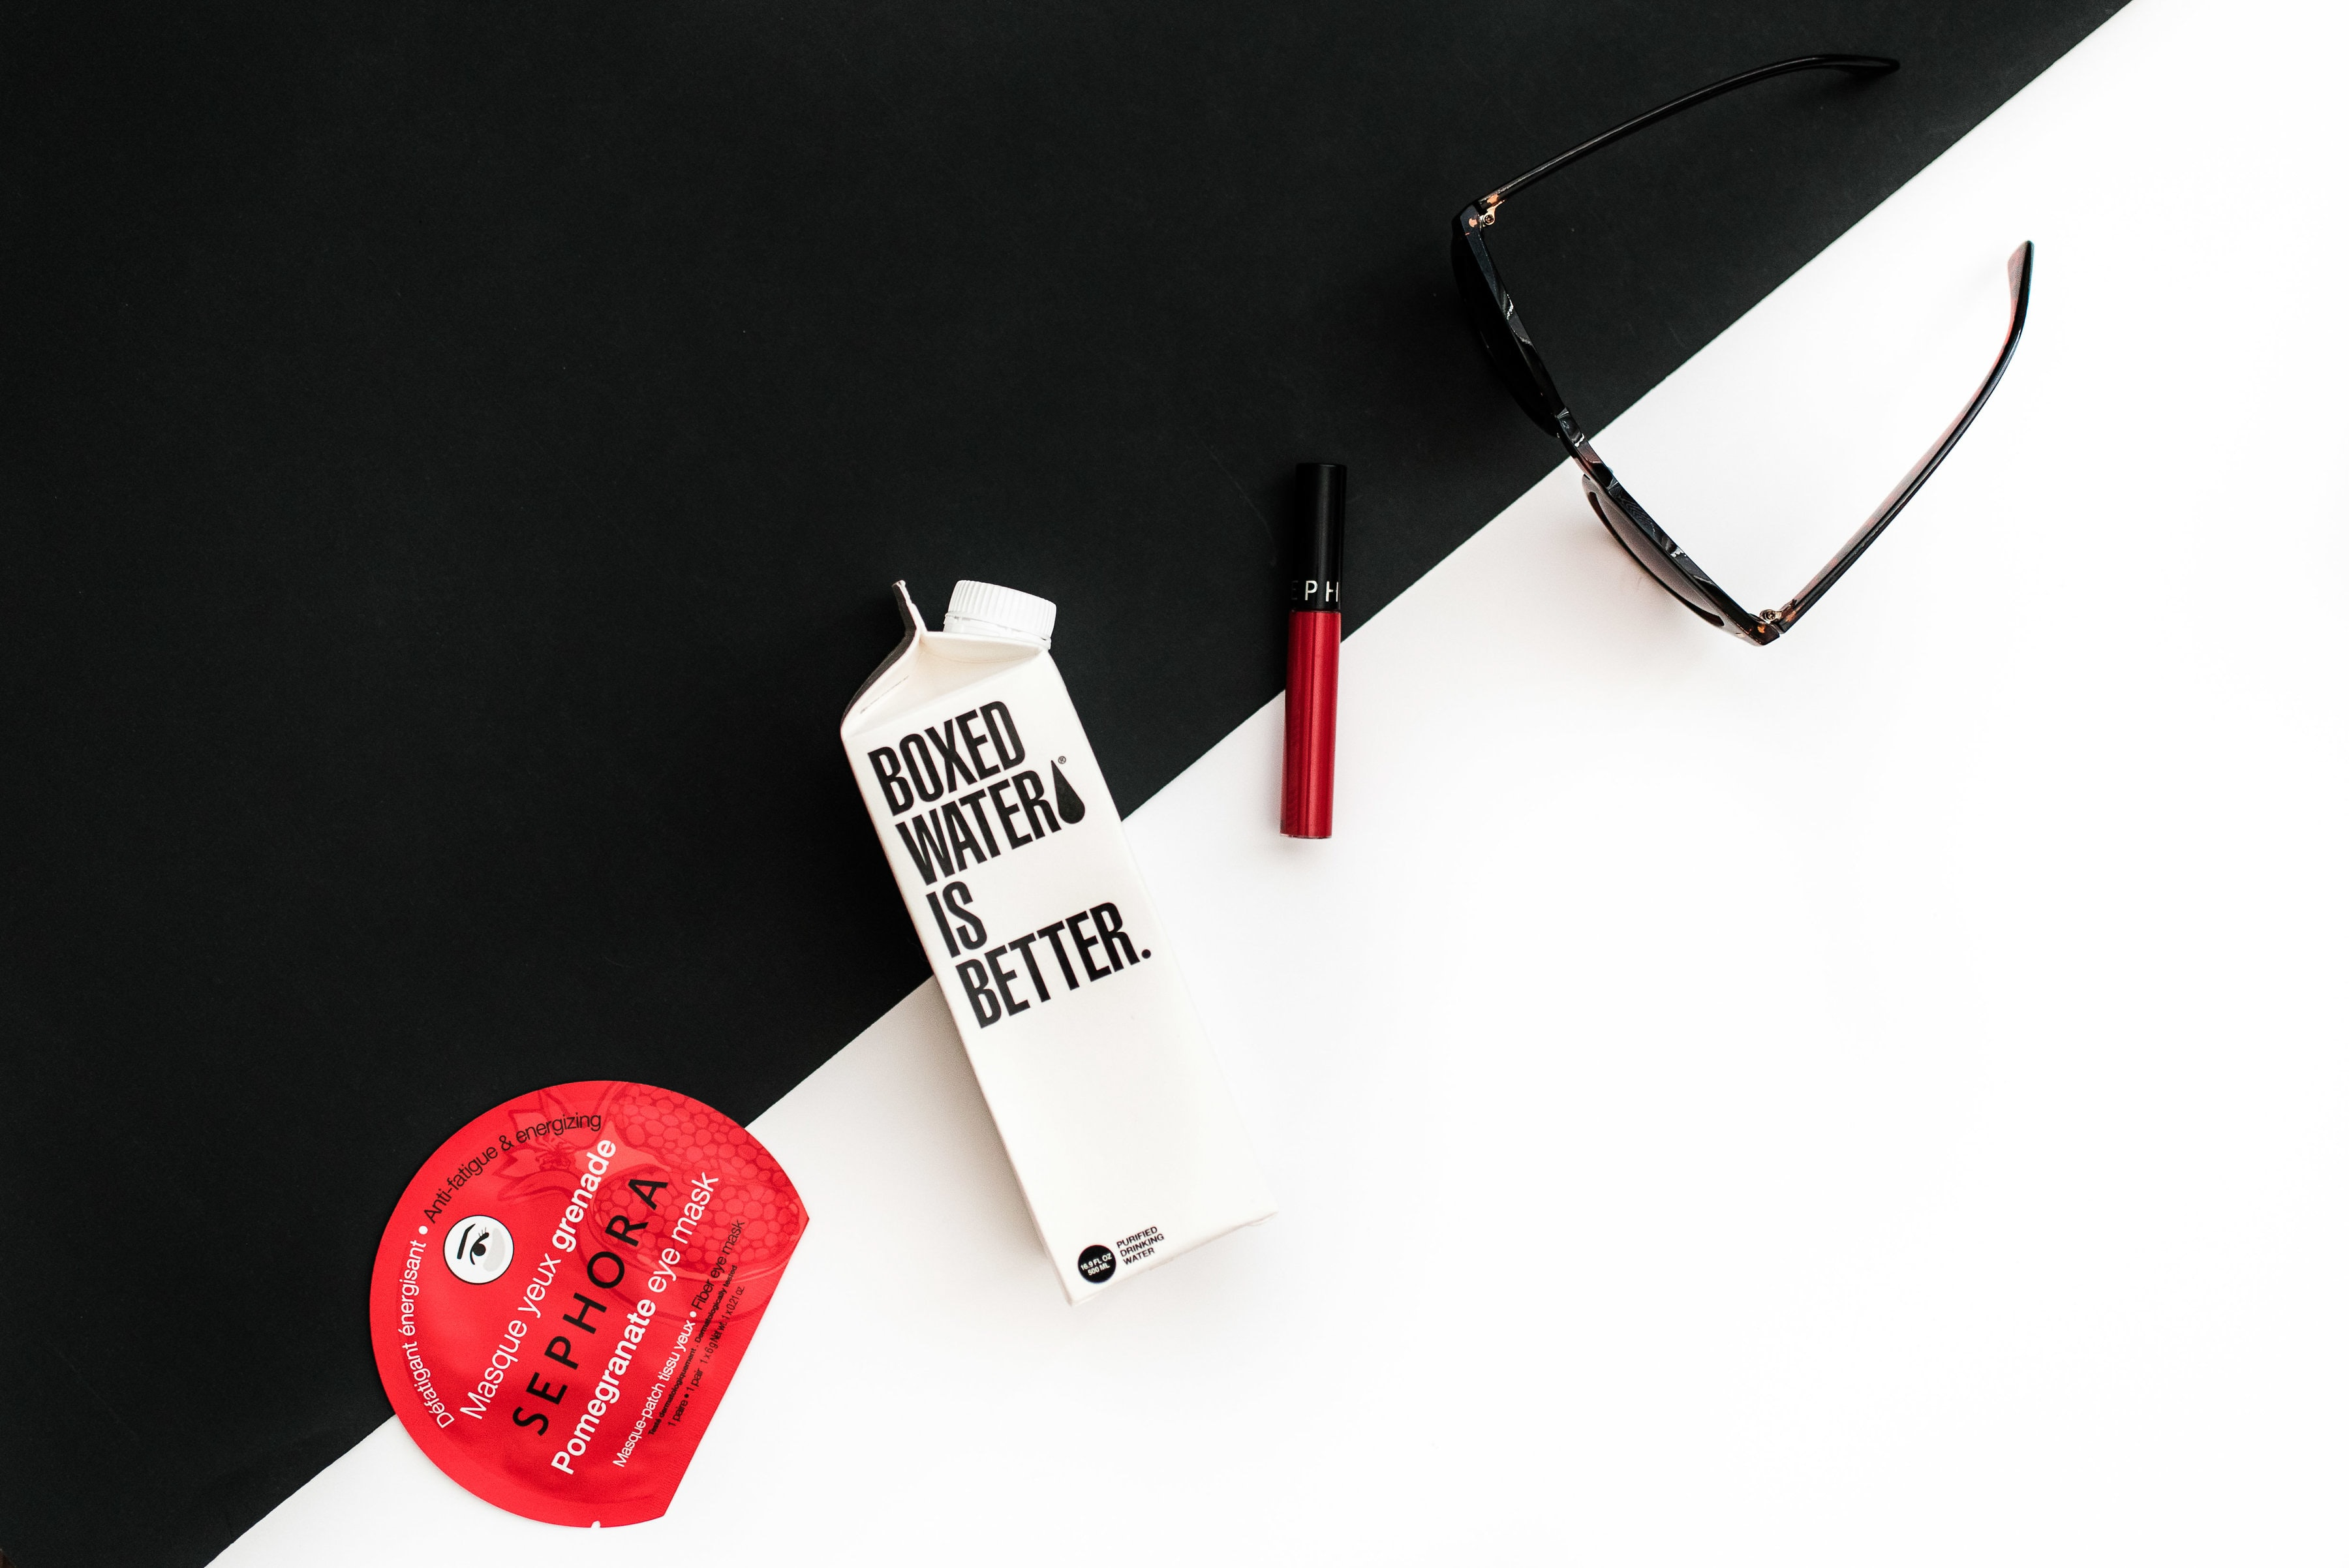 Sunglasses beside a carton of Boxed Water and Sephora products